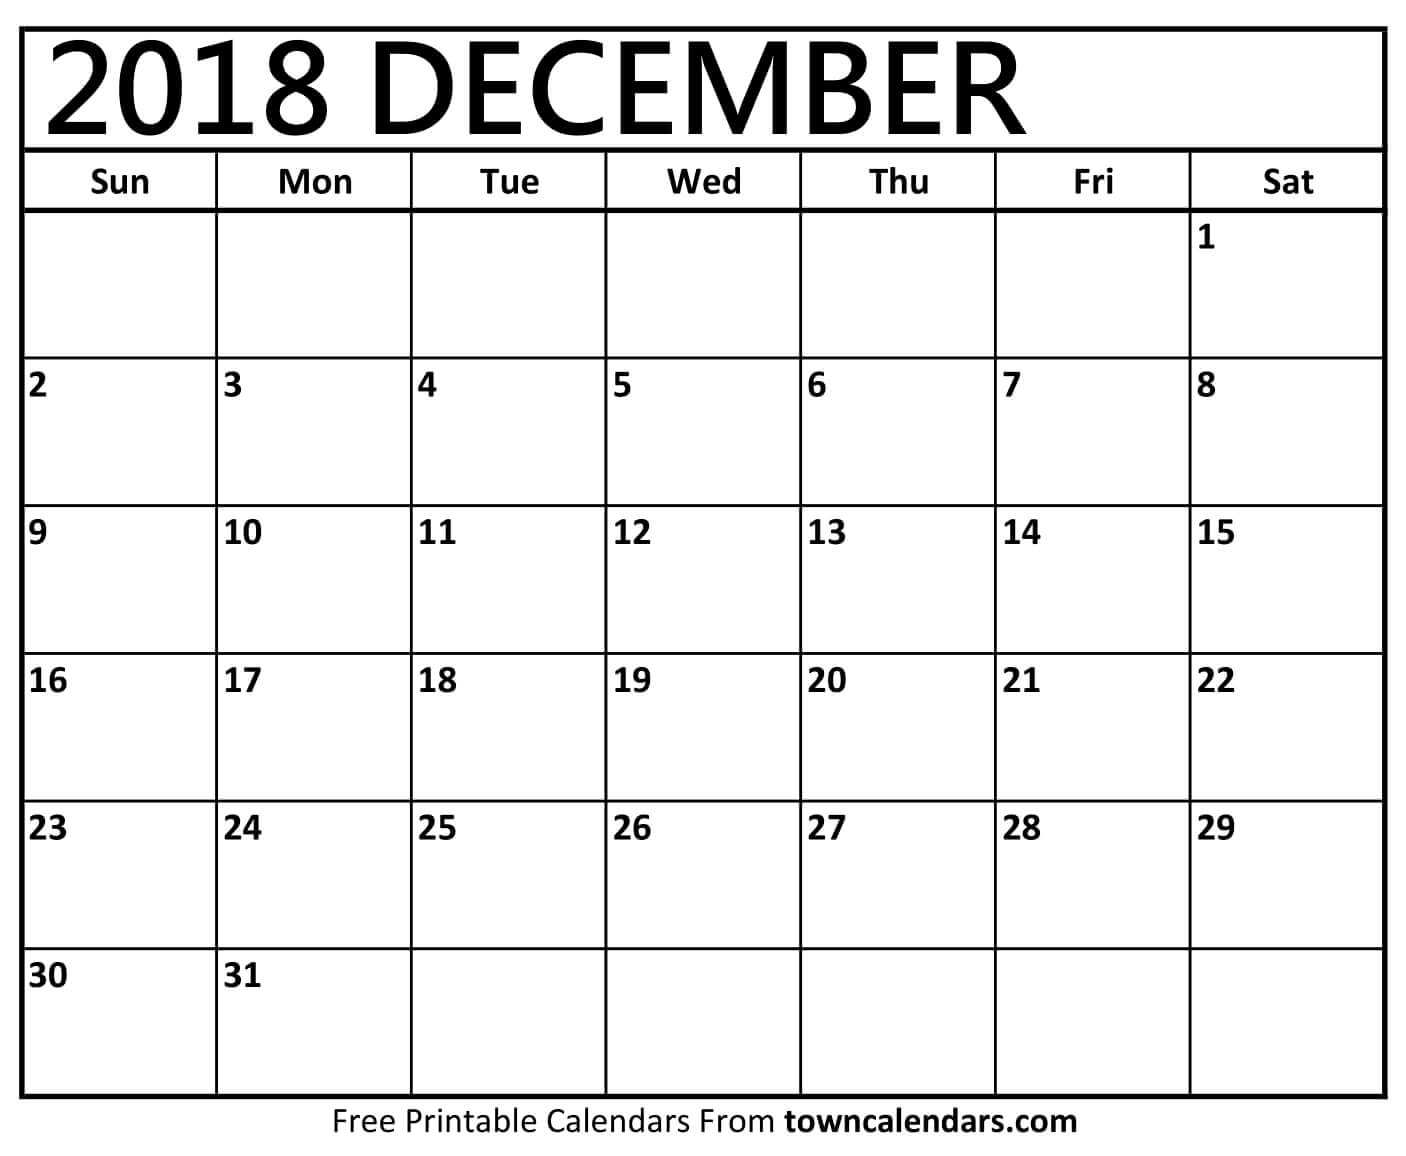 December 2018 Calendar By Week Pictures